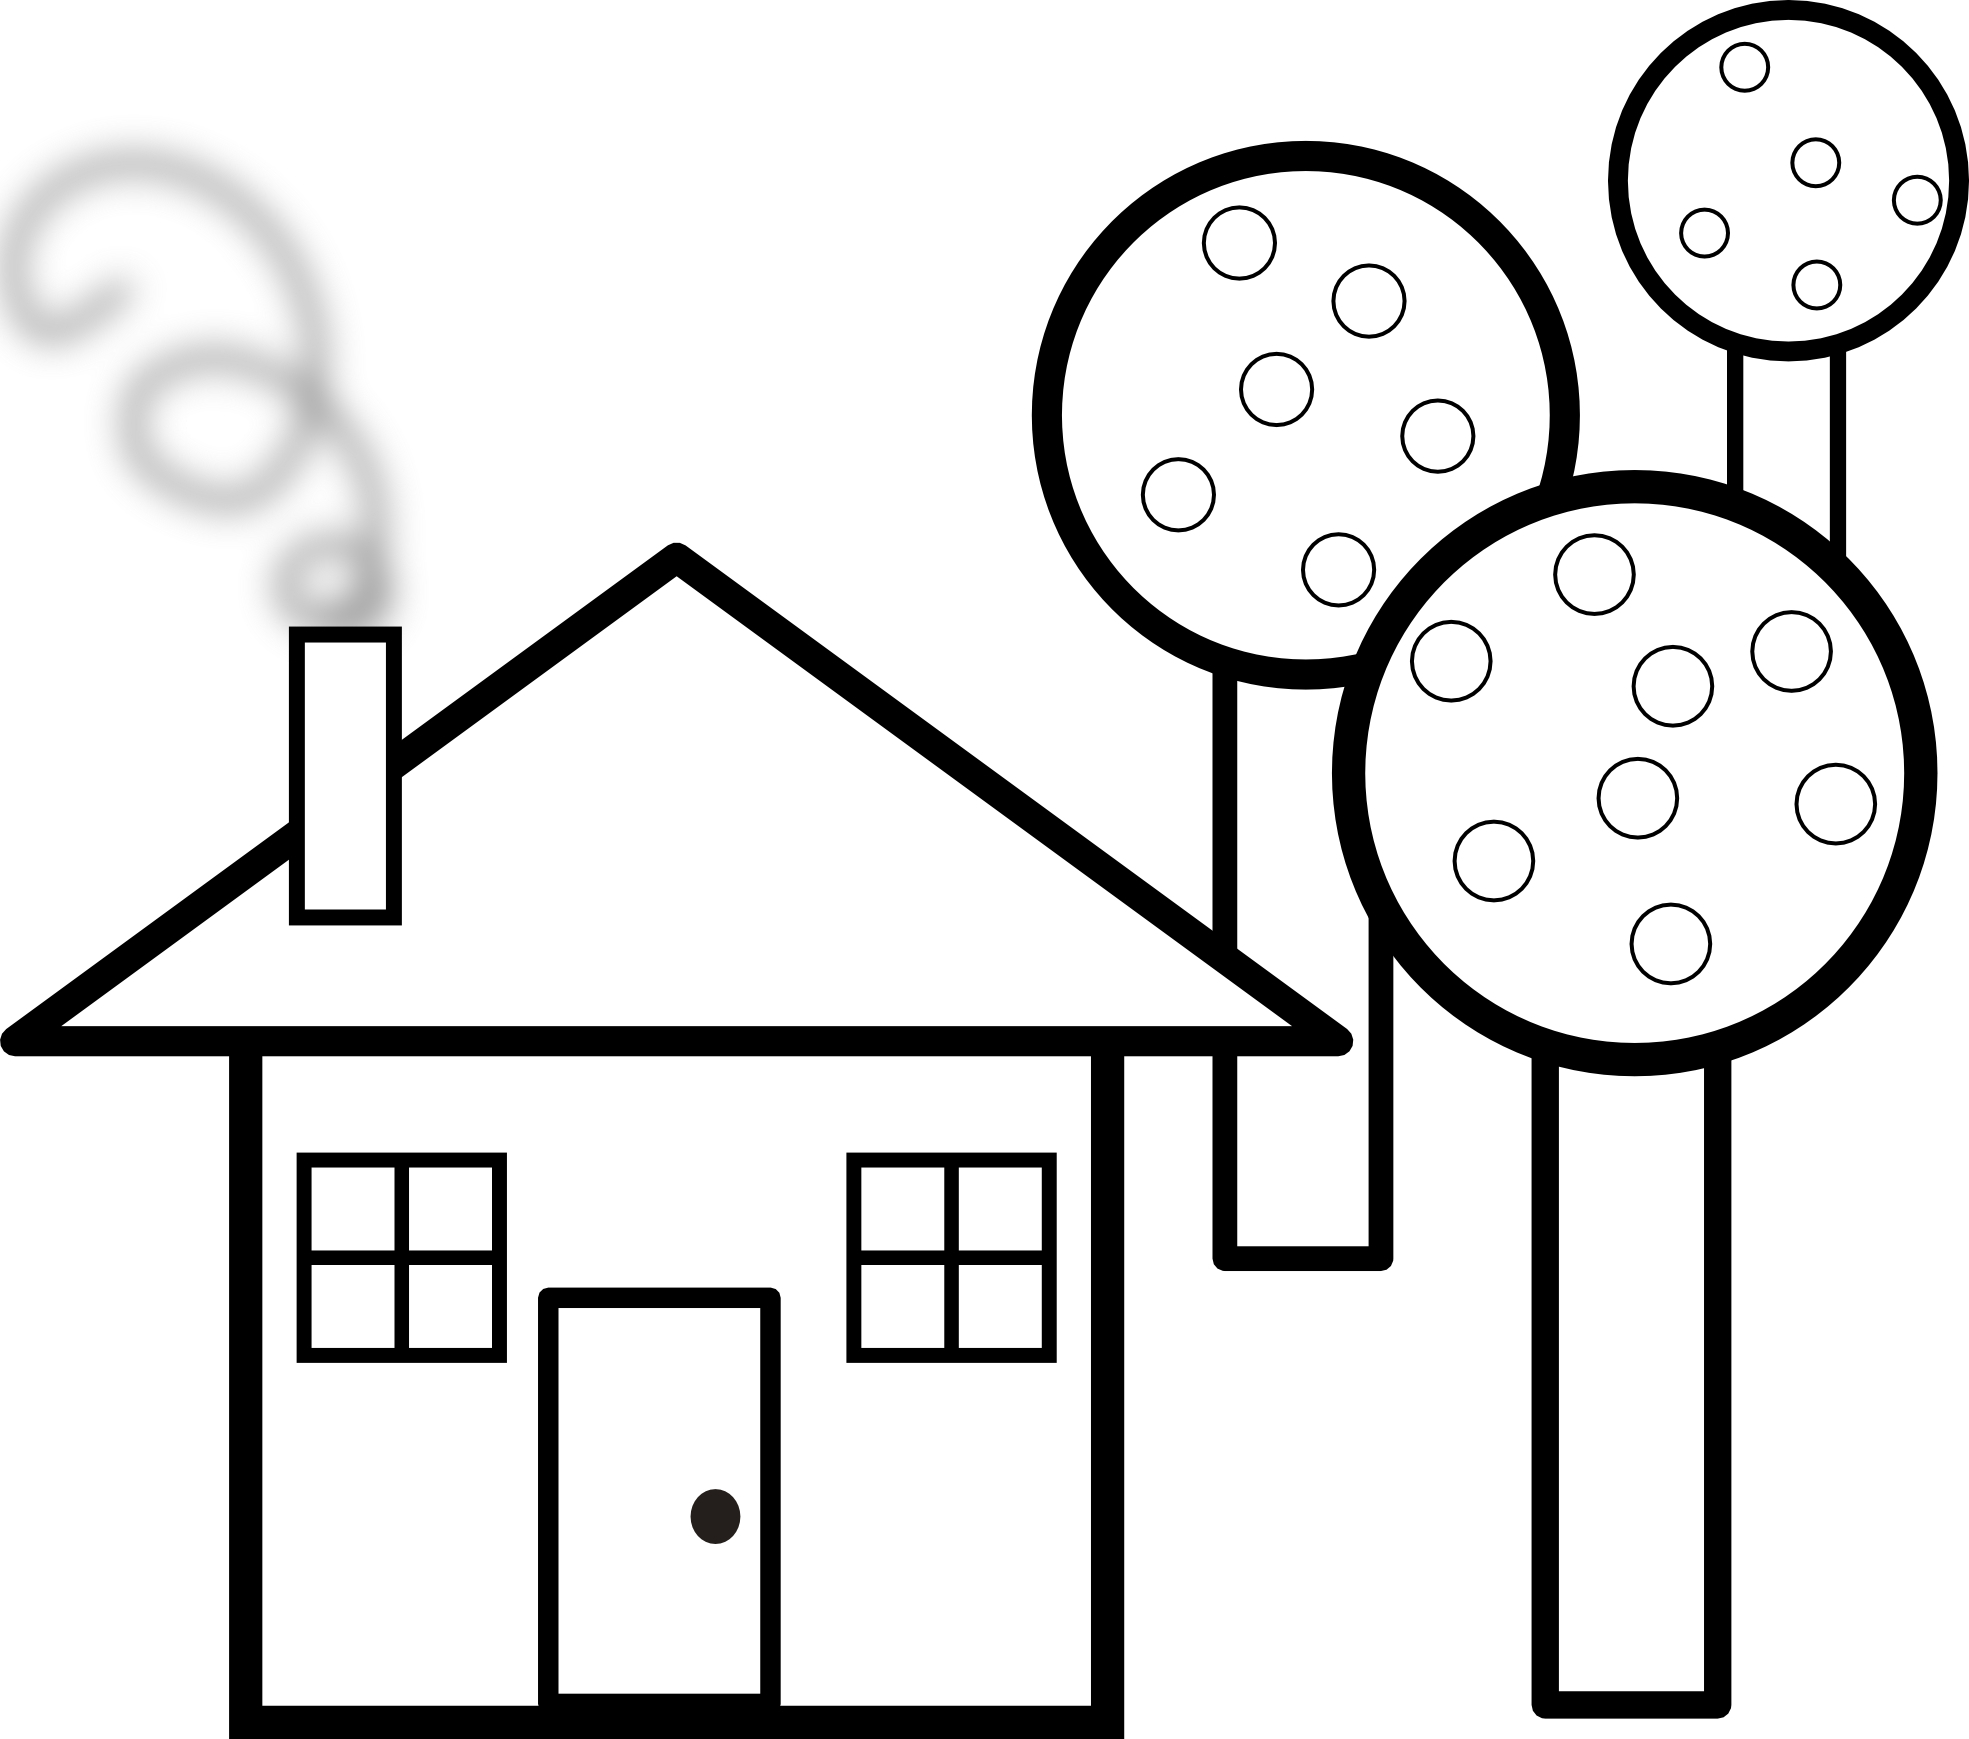 house drawing black and white at getdrawings com free for personal rh getdrawings com haunted house clipart black and white home clipart black and white